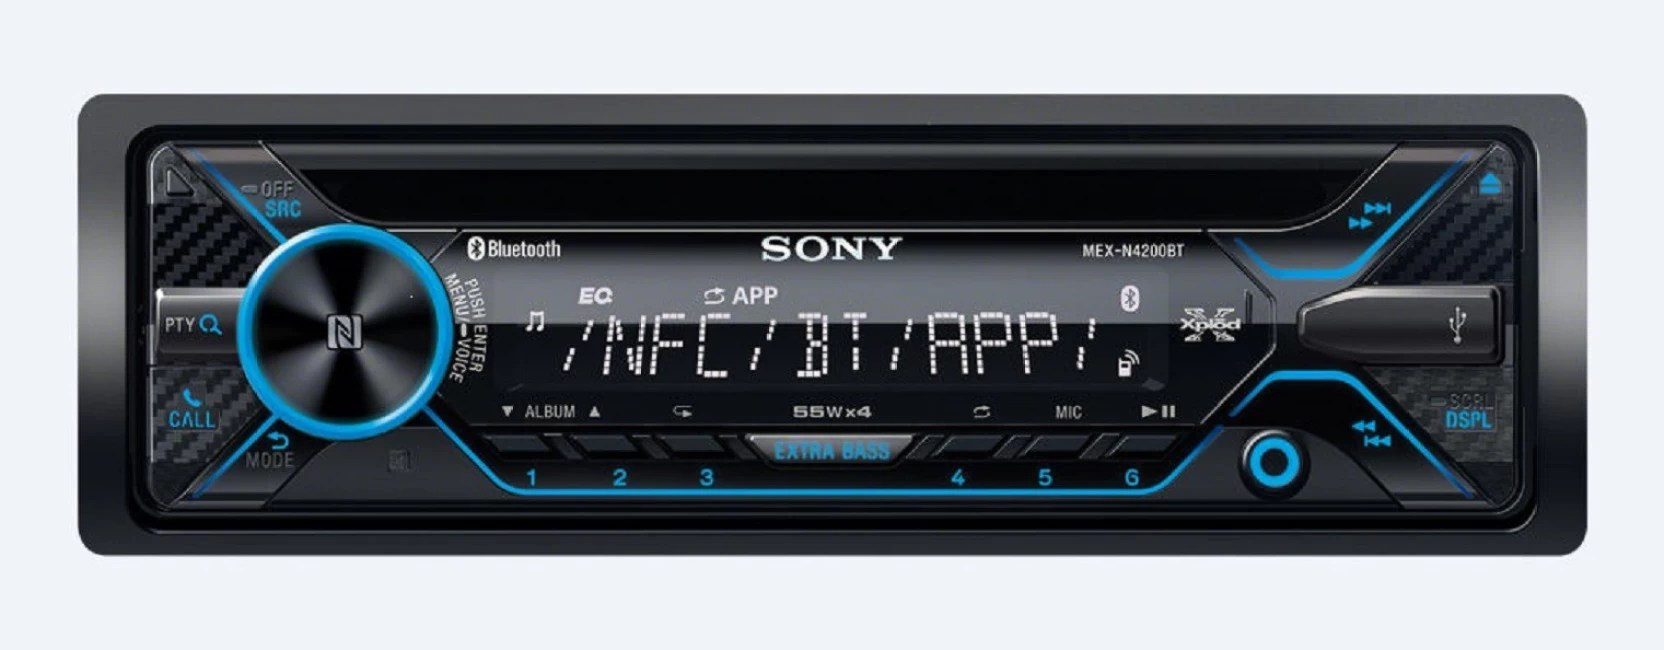 medium resolution of sony mex n4200bt car stereo price in india buy sony mex n4200bt add to cart